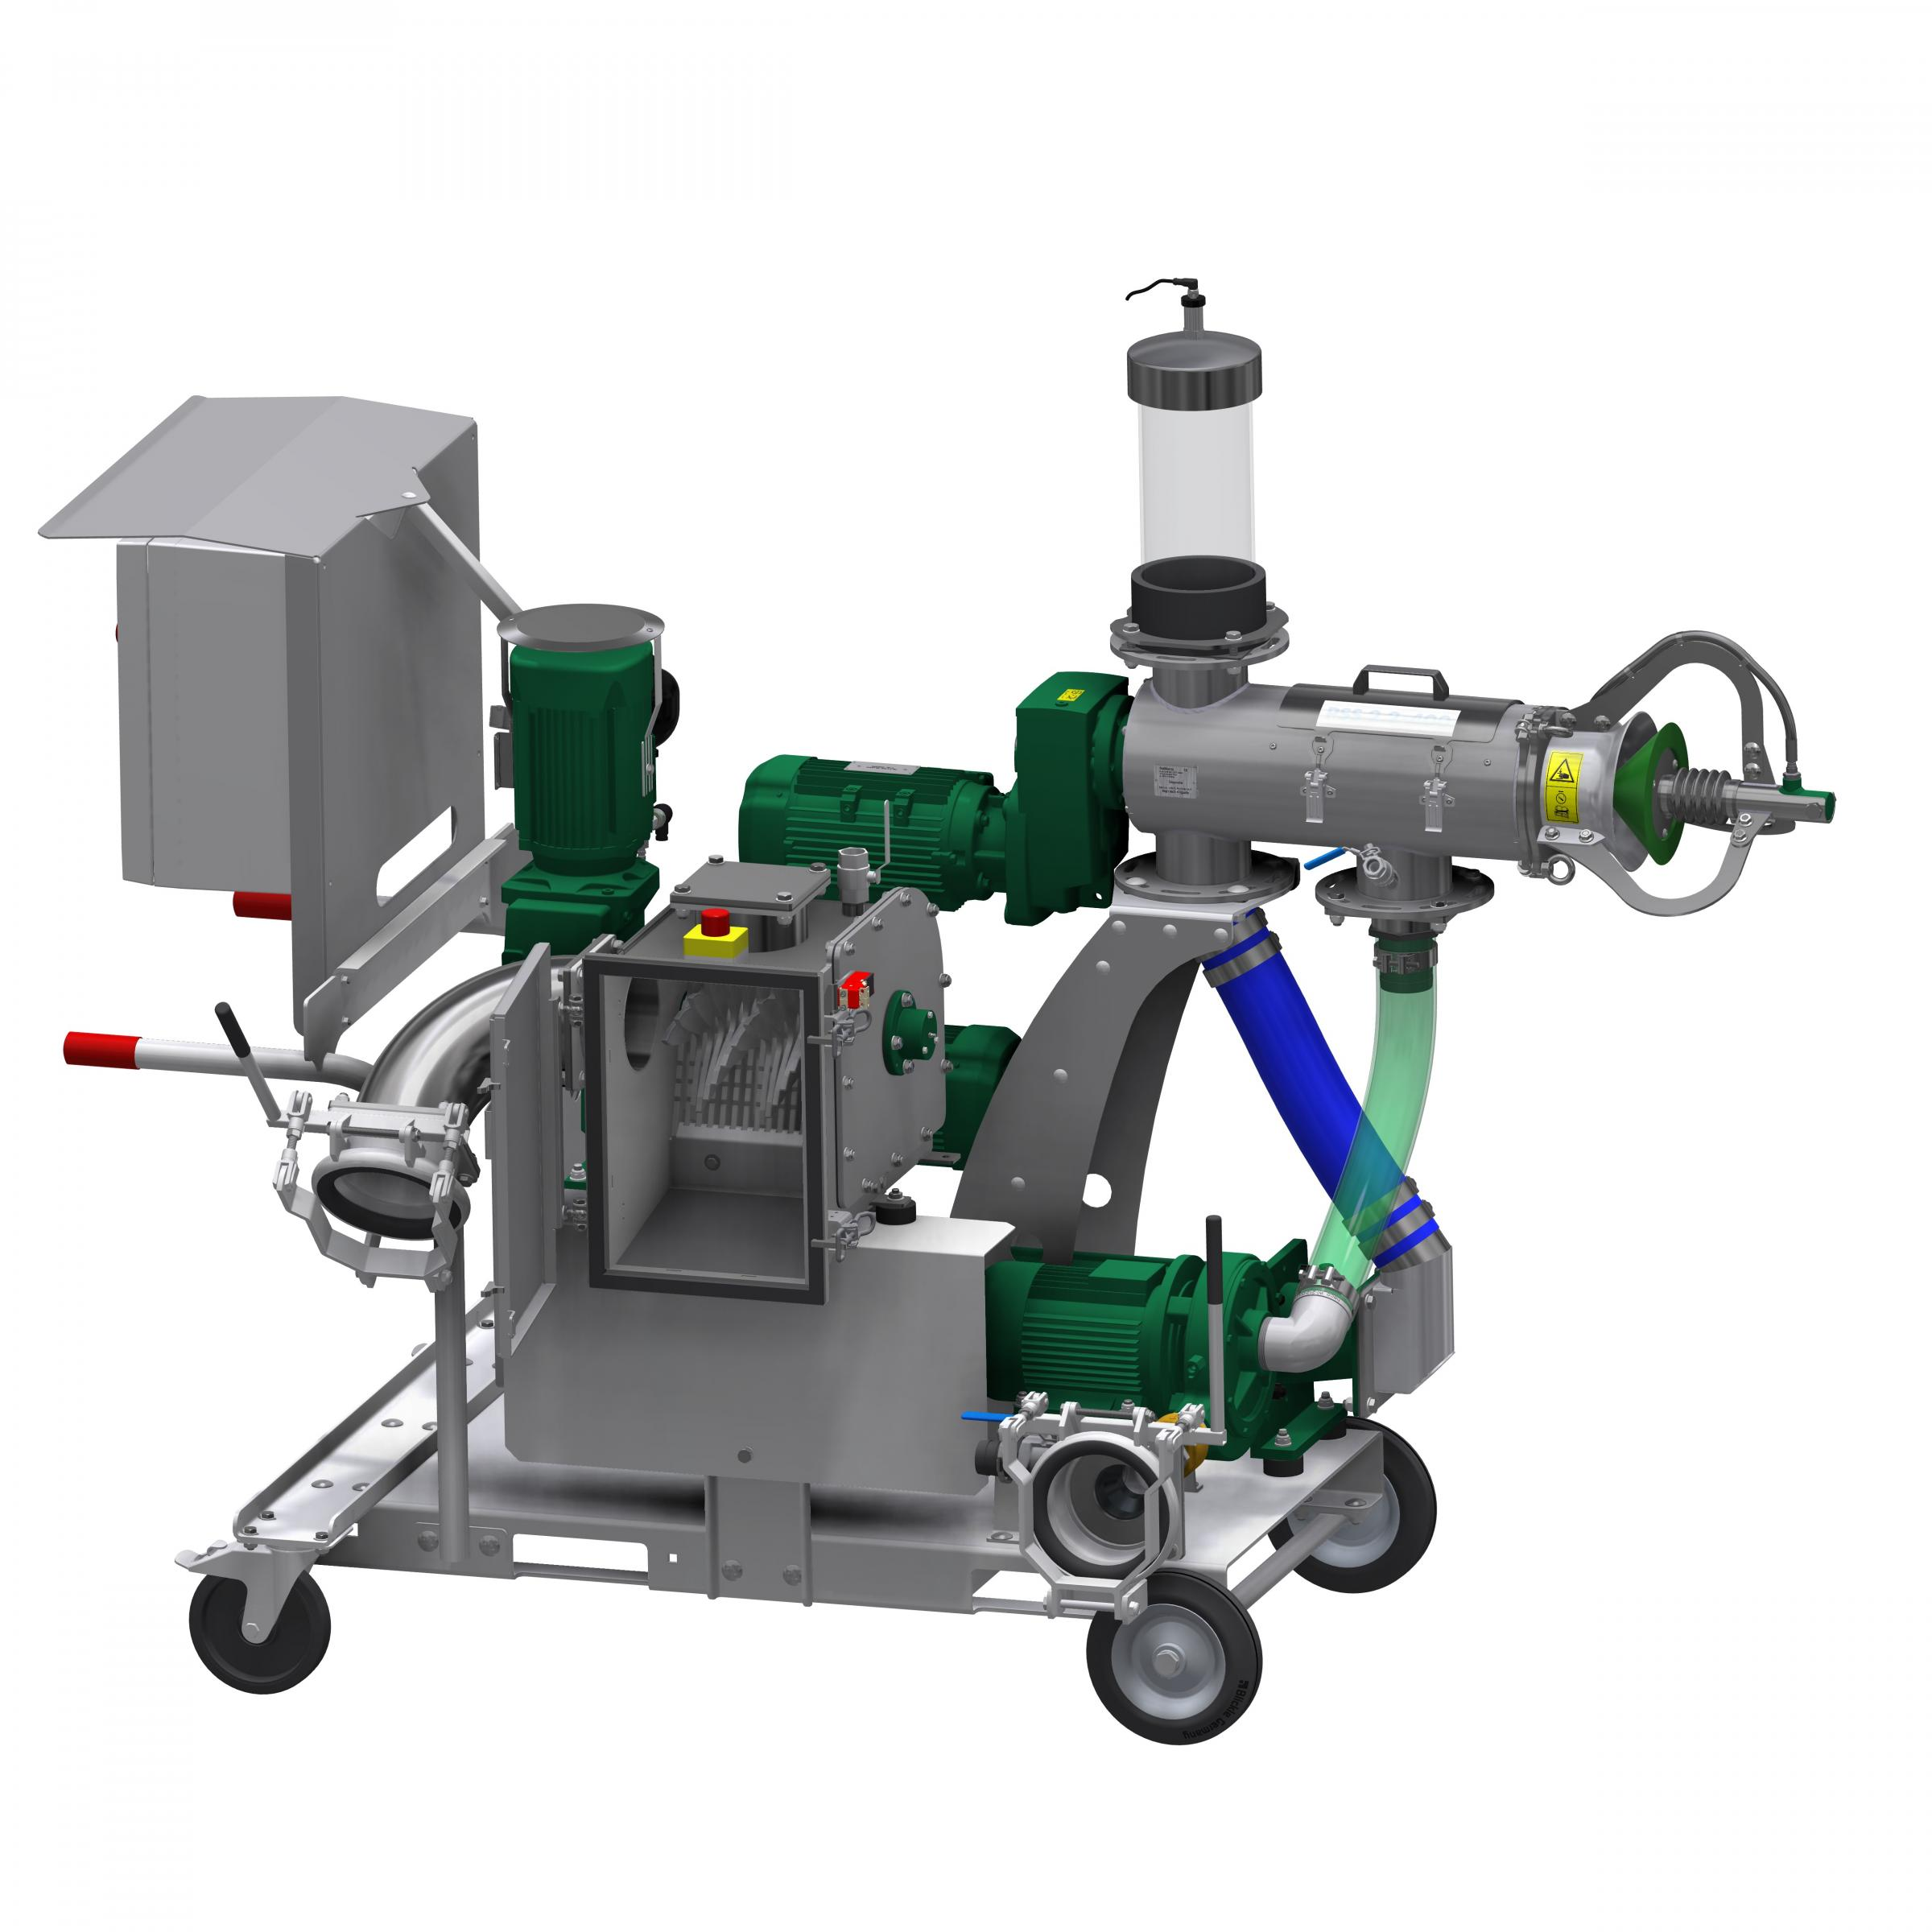 Slurry seprators are increasingly being used to split the fractions in slurry into solids and liquid to ease storage